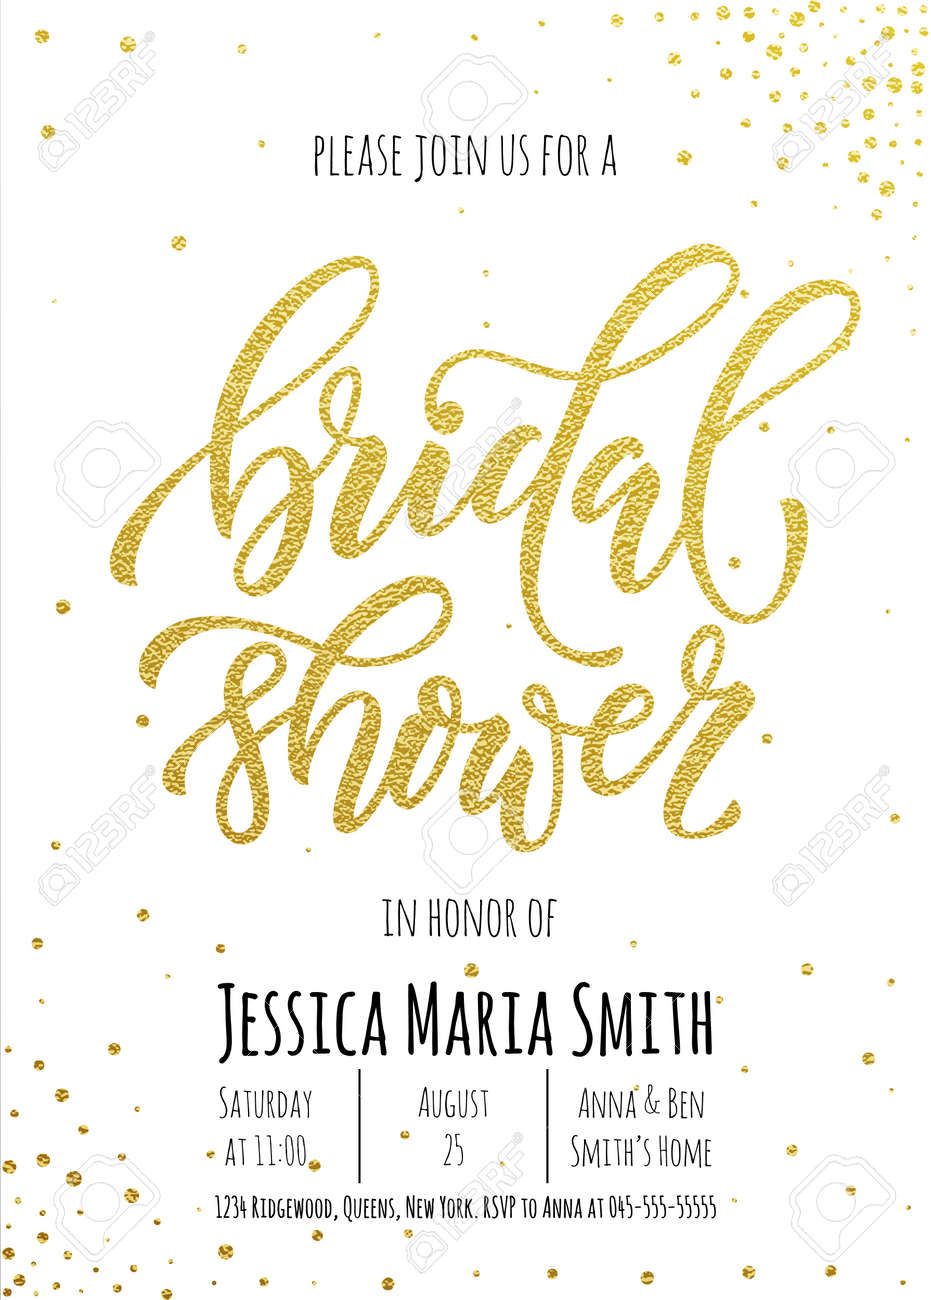 bridal shower invitation card template classic gold calligraphy